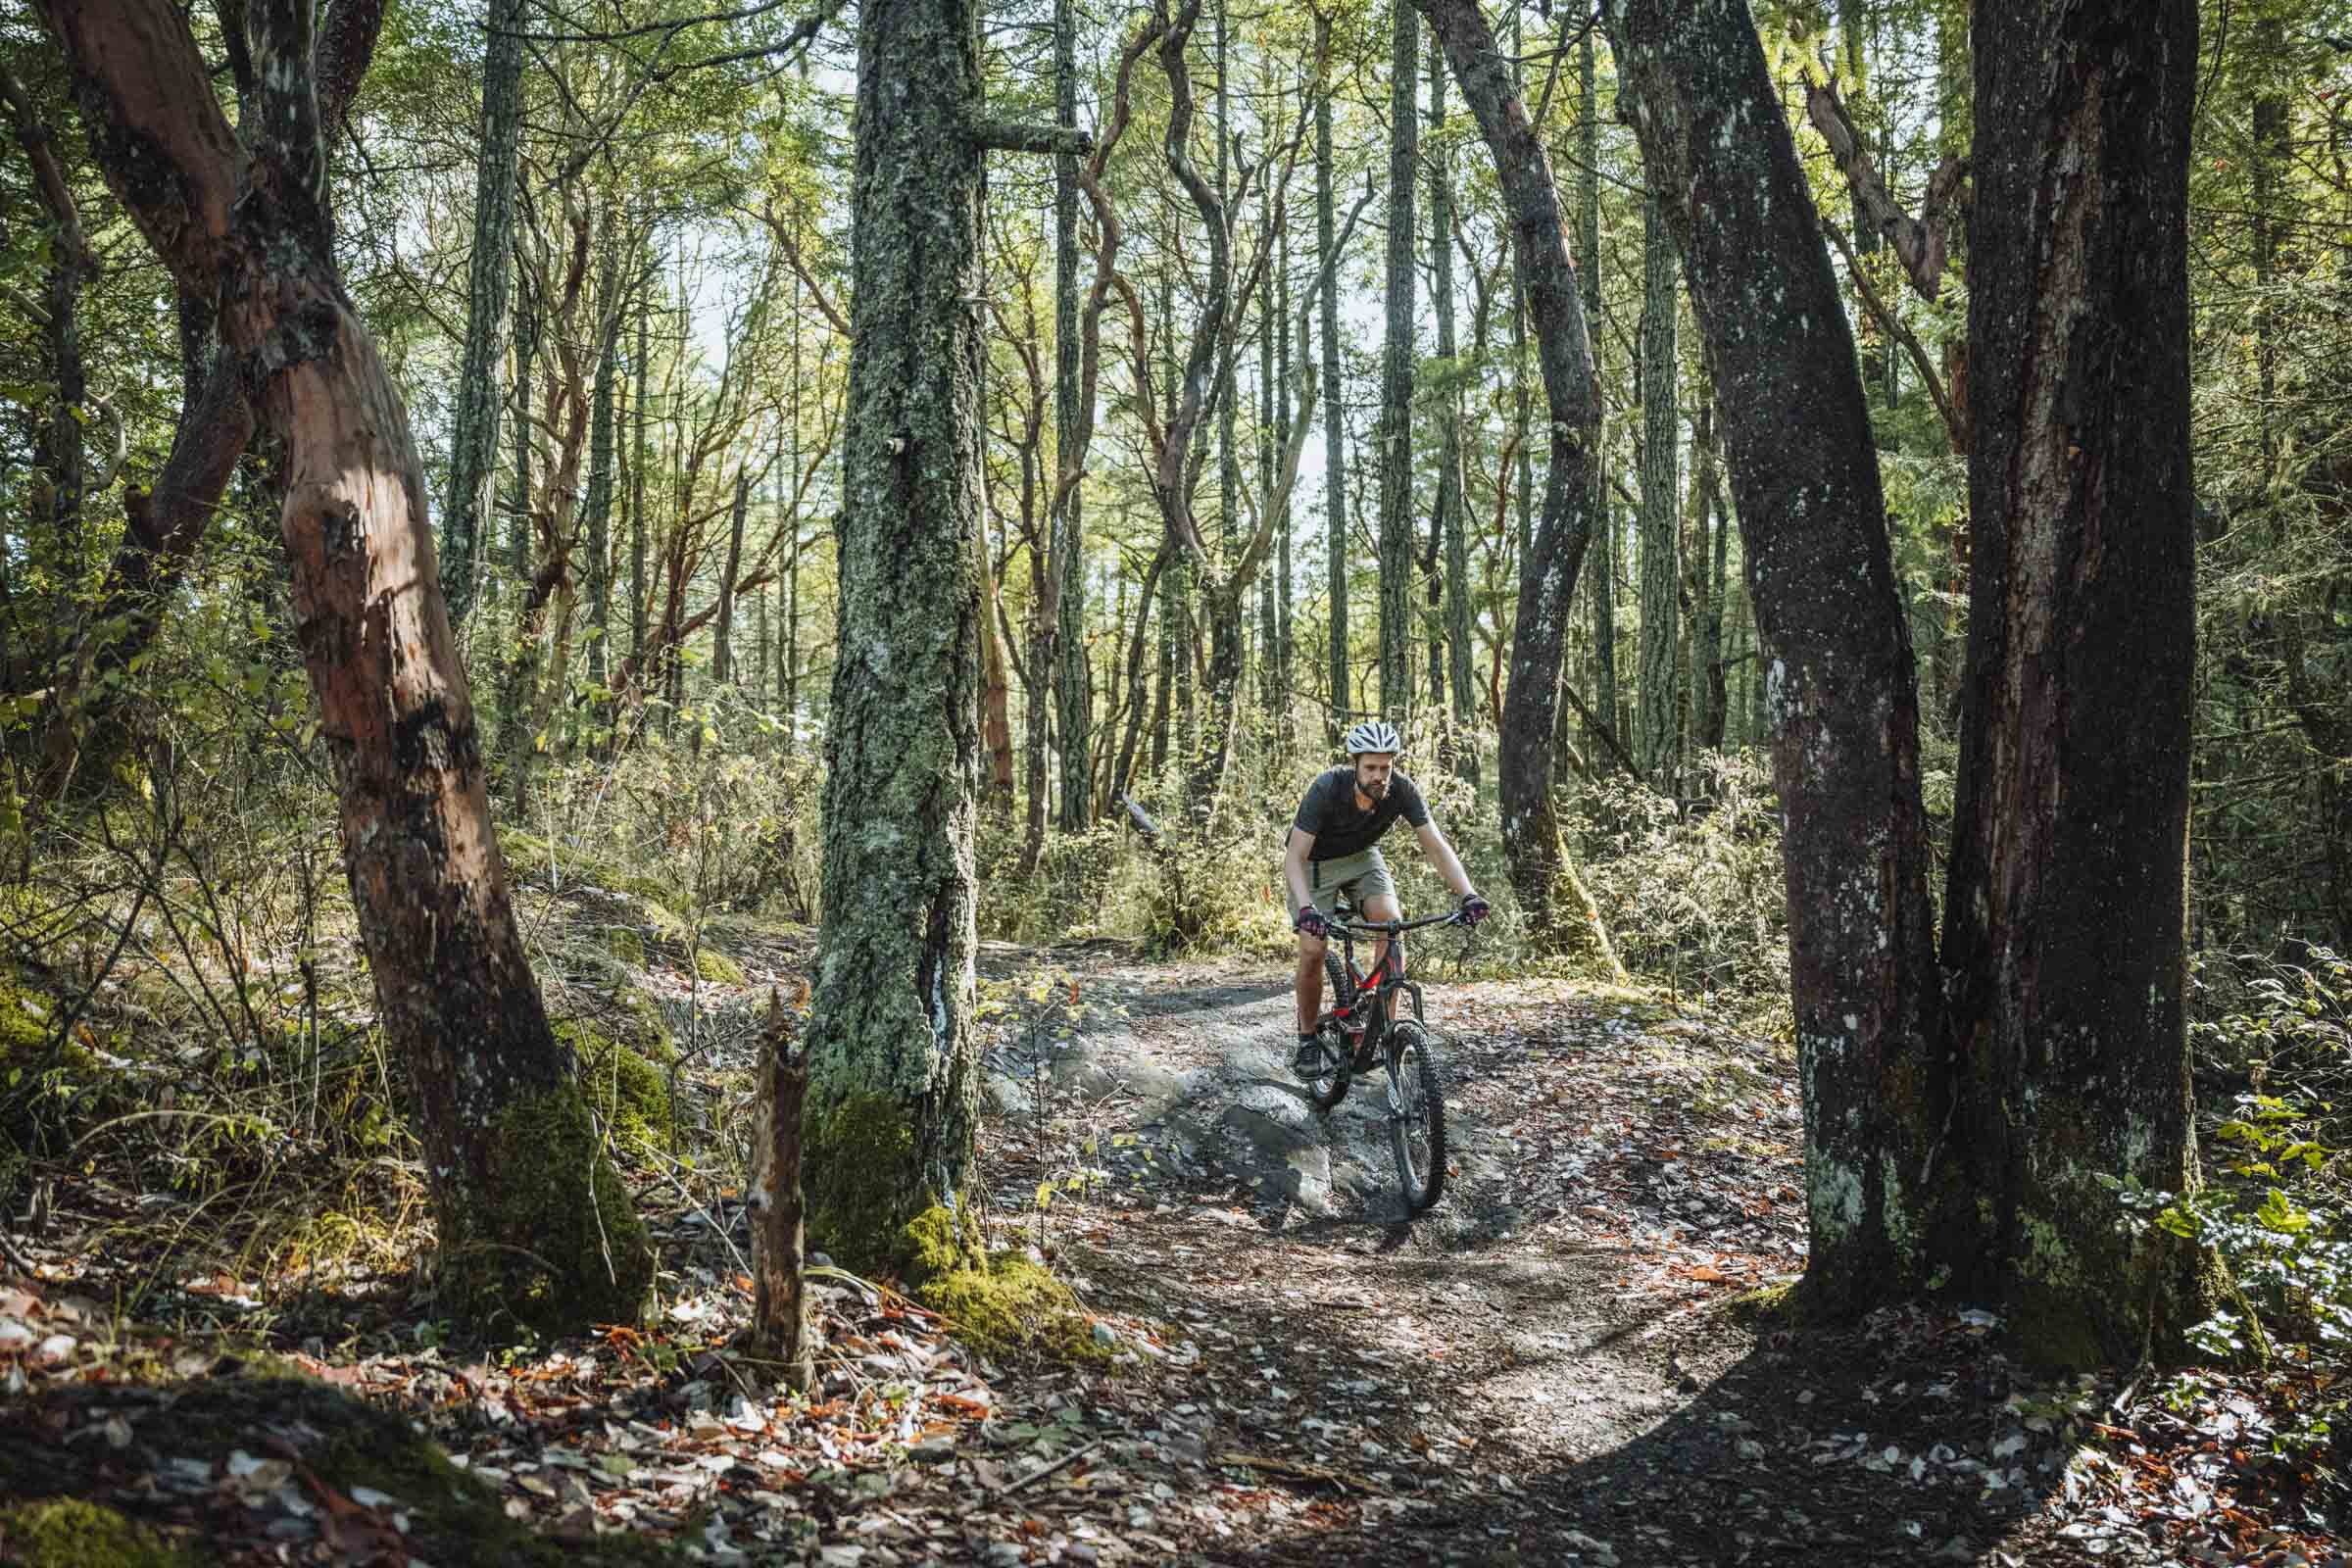 Taking it easy on the nice flat forest sections of the Mt Work mountain bike trails